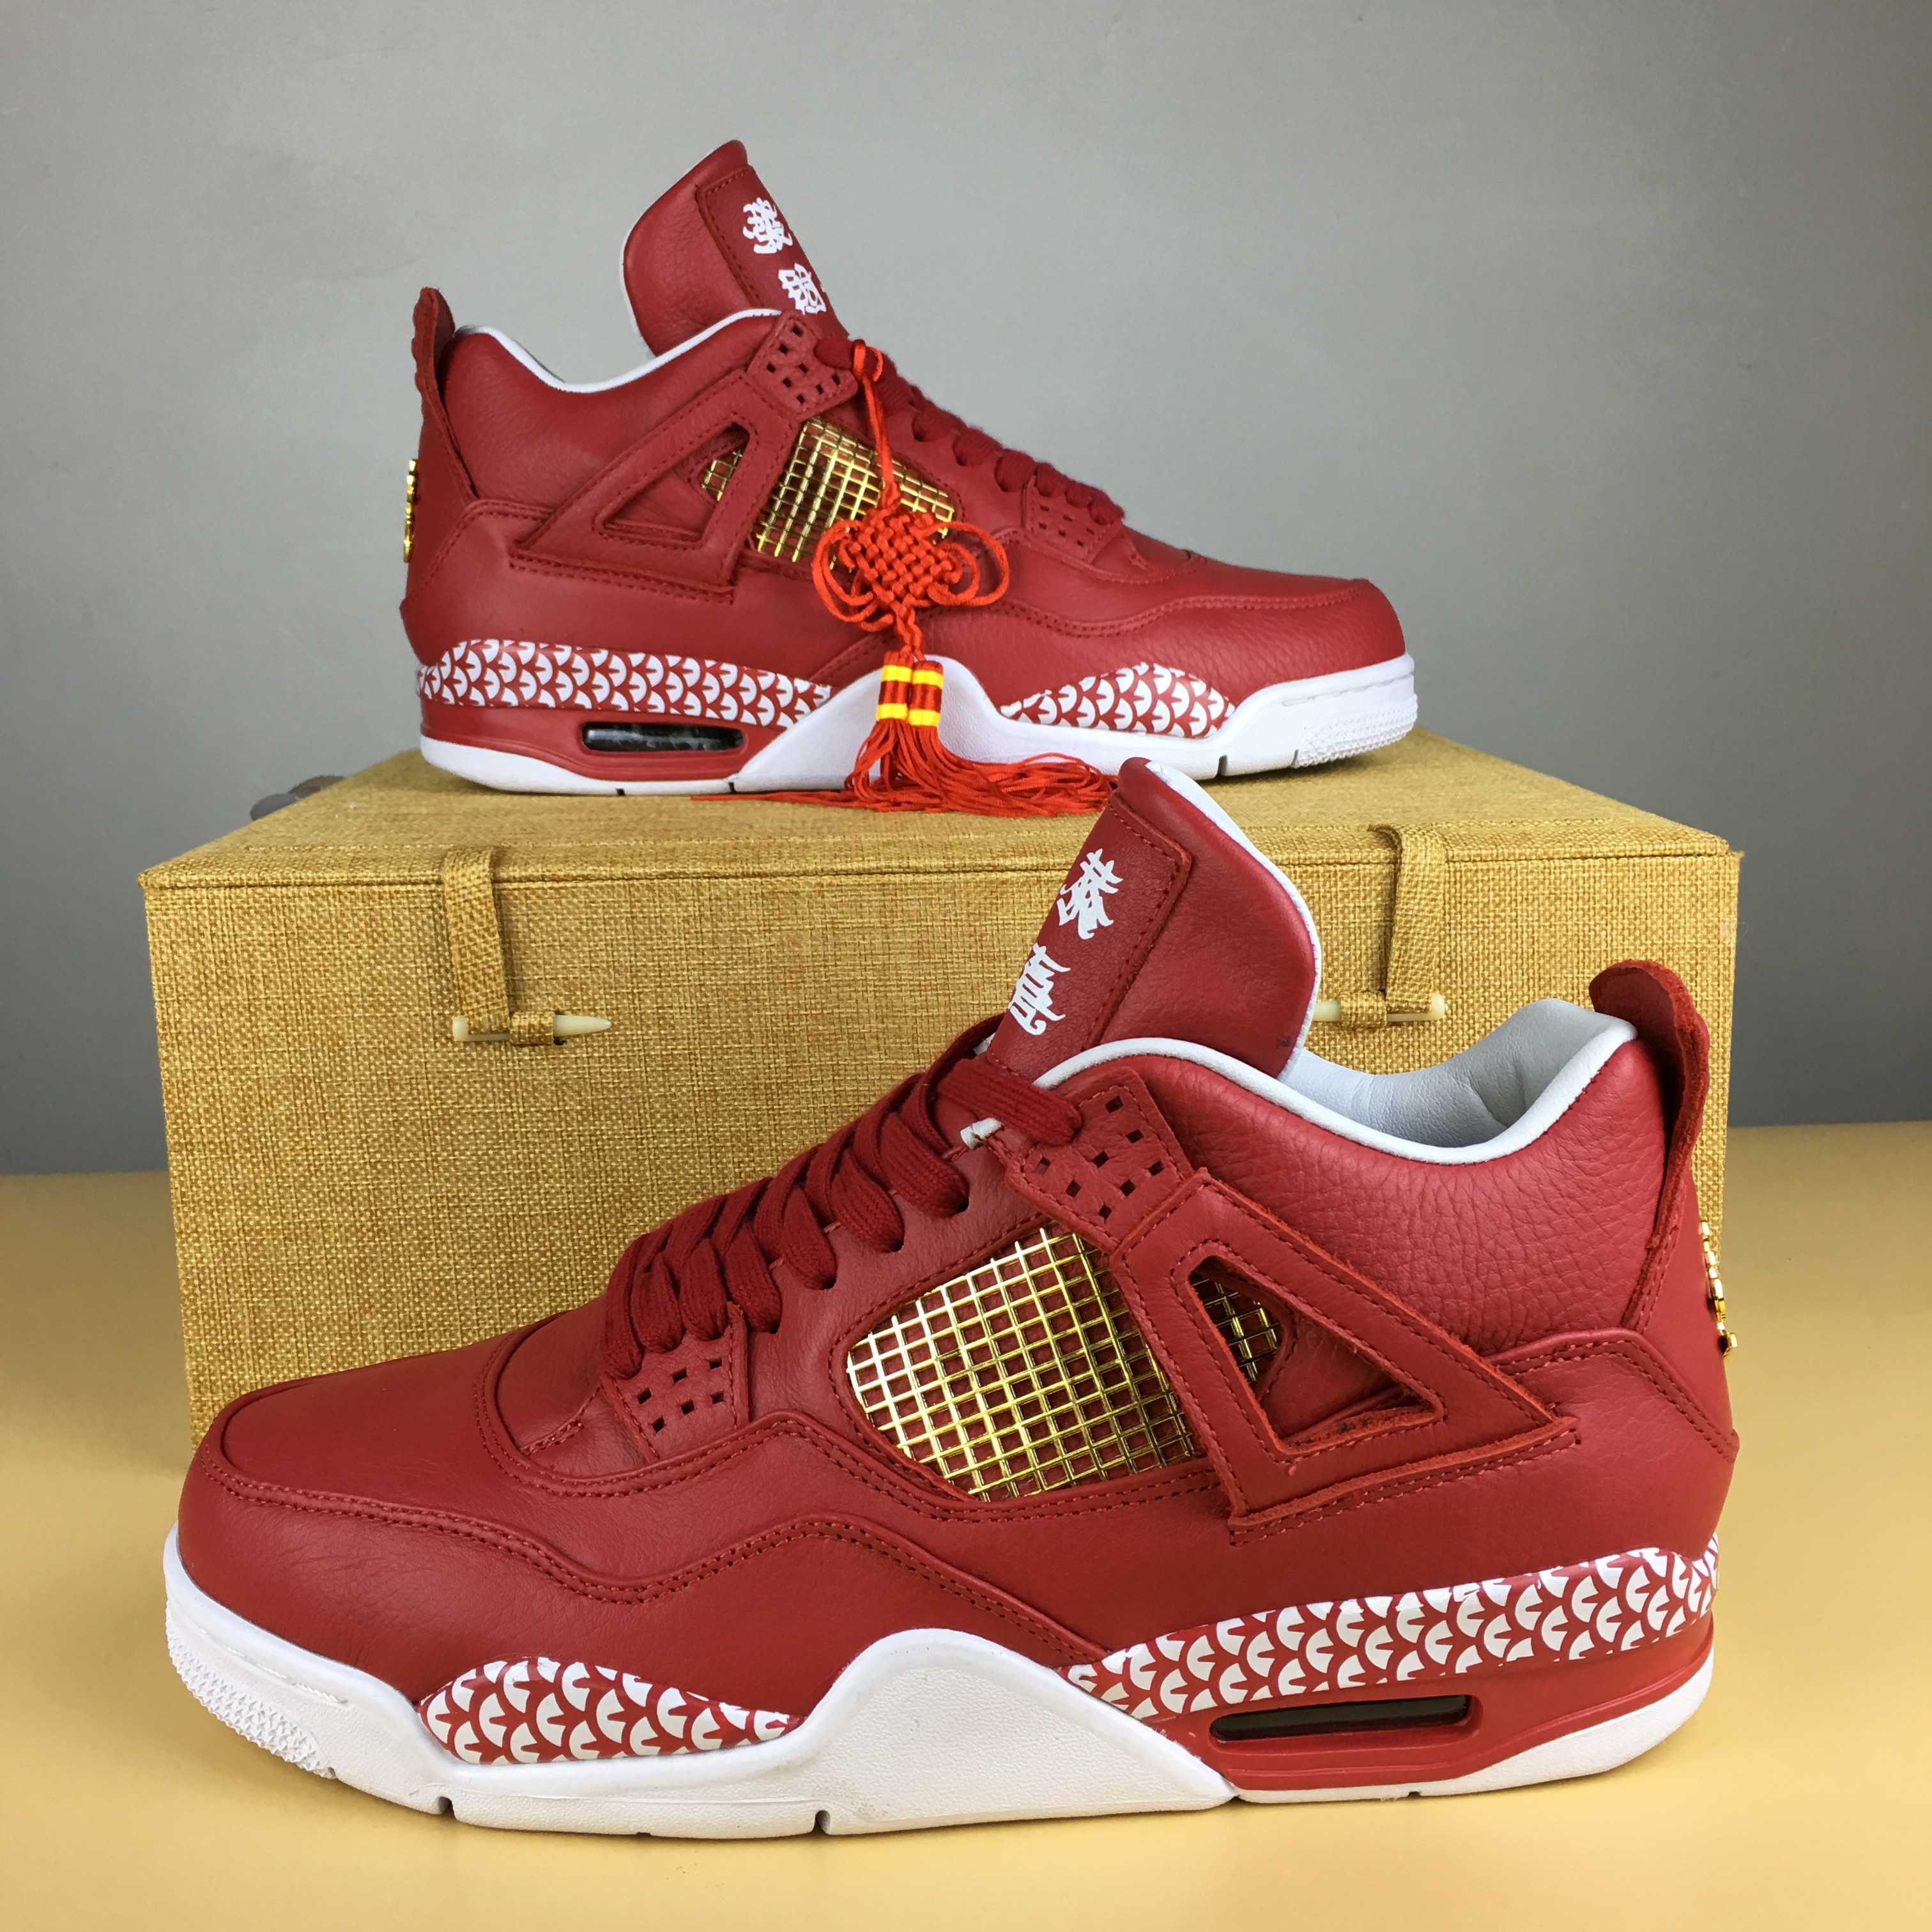 Latest Jordan 4 Kung Hei Fat Choi Red Shoes